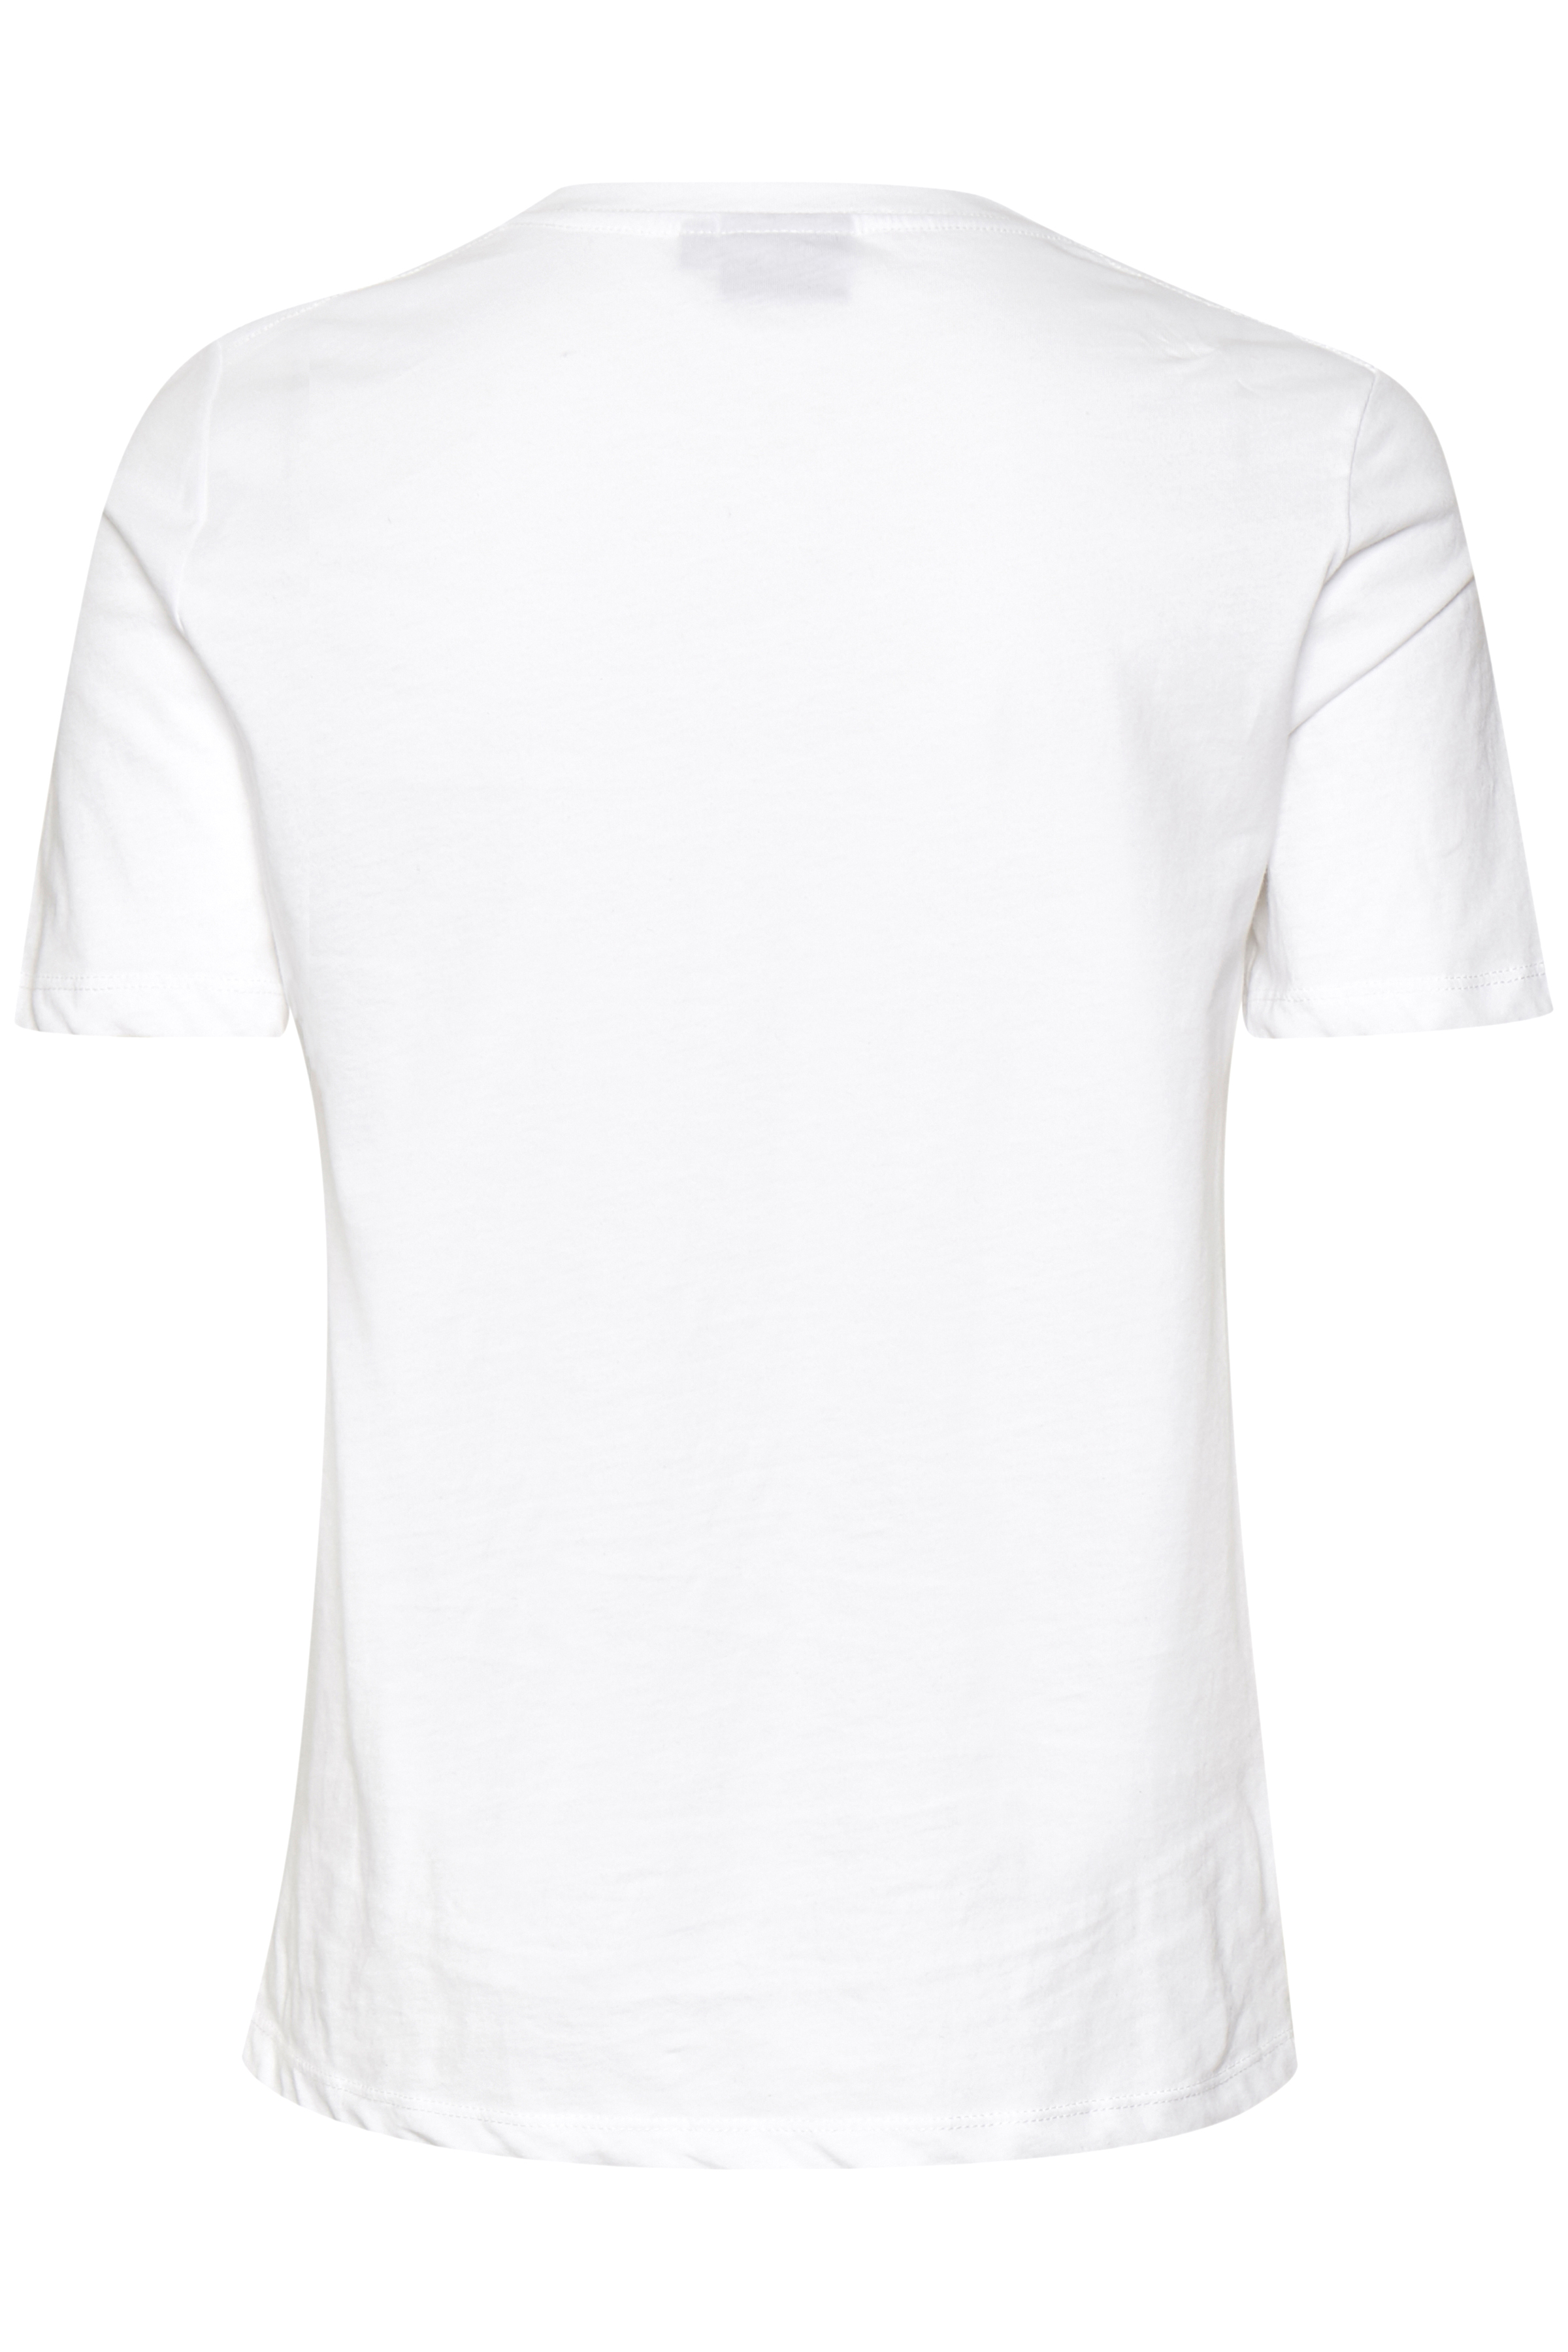 T-shirt from b.young – Buy  T-shirt from size XS-XXL here